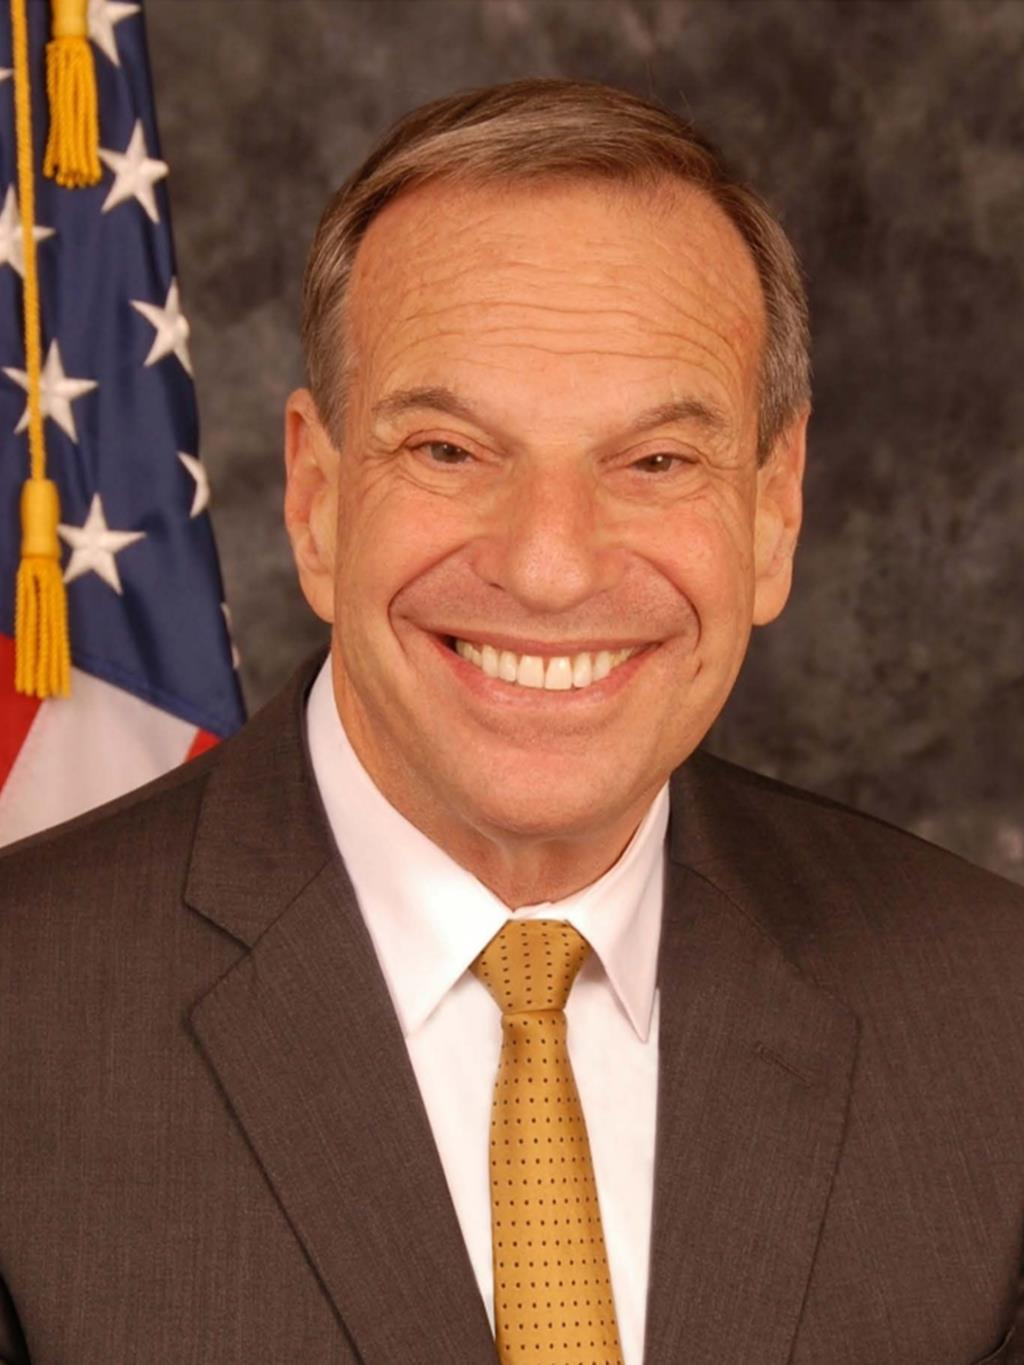 Bob Filner's quote #4